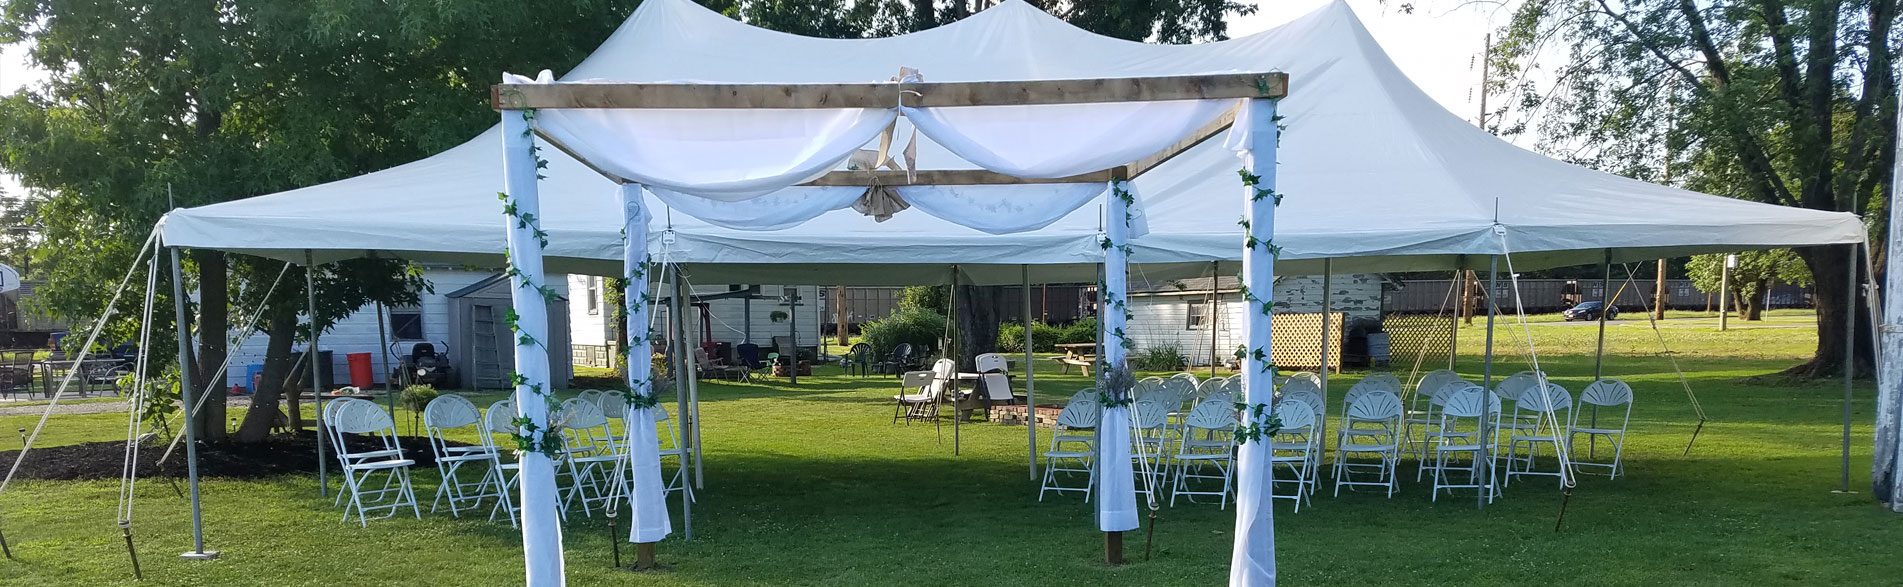 394 & Tent Rentals in Carneys Point NJ | Bounce House Rentals